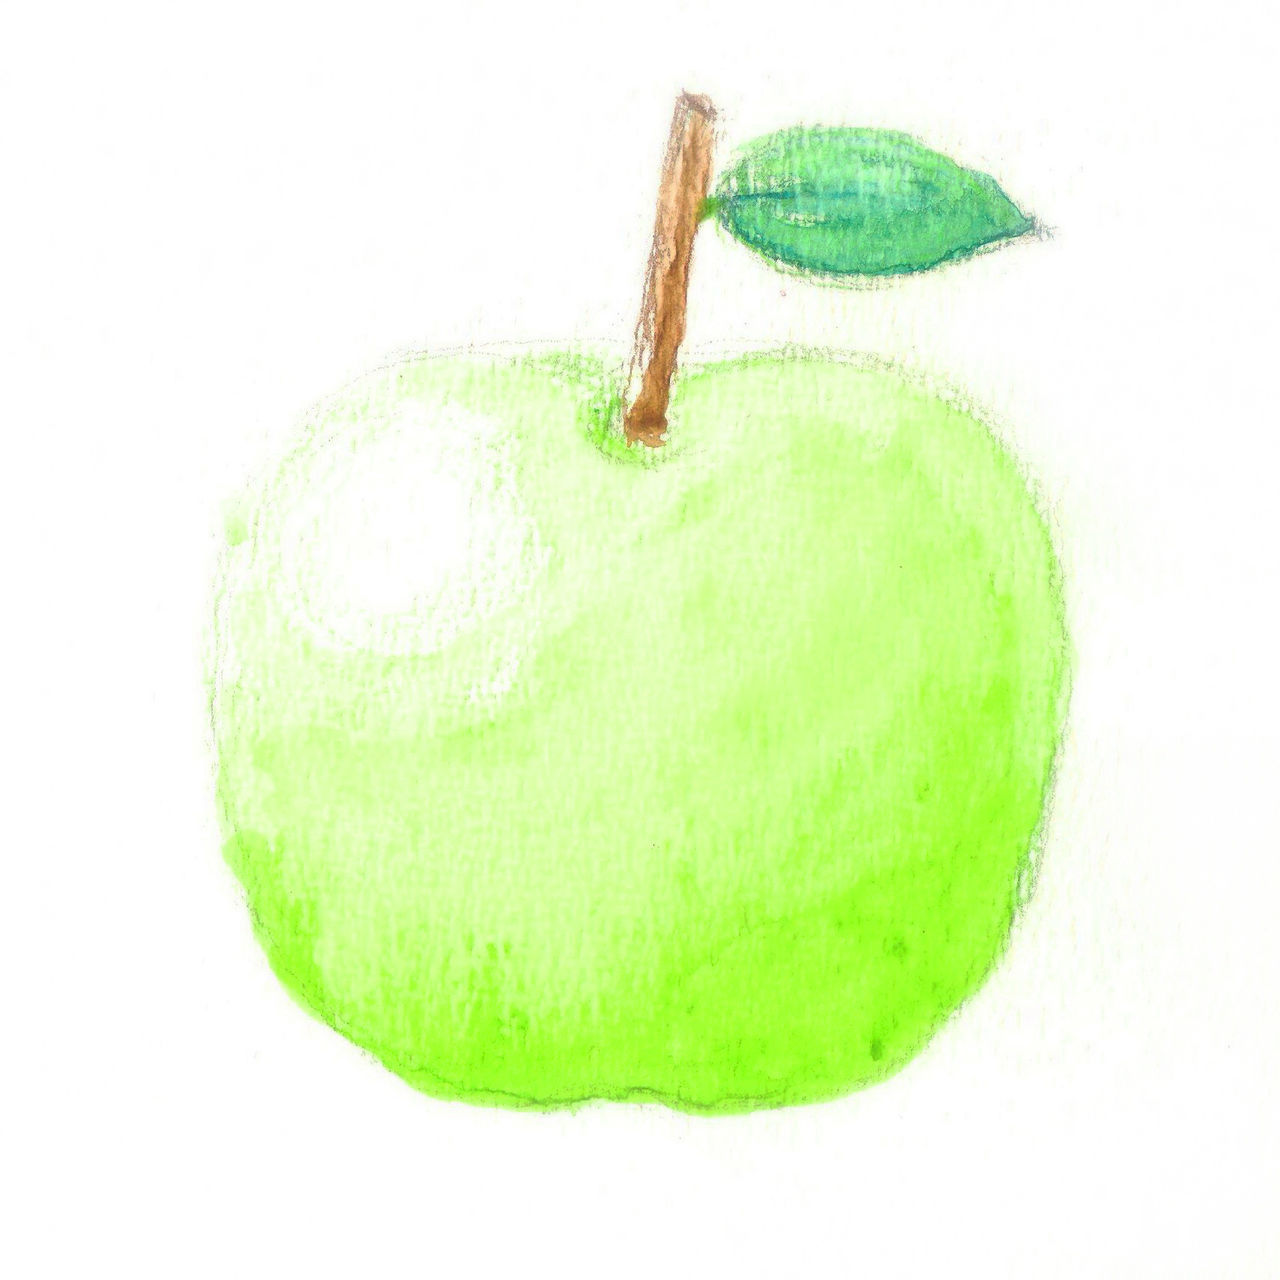 my artwork green apple water color on paper Apple Art ArtWork Background Color Green Green Apple Green Color Green Green Green!  My Artwork Nature Paint Paper Water Color White Background